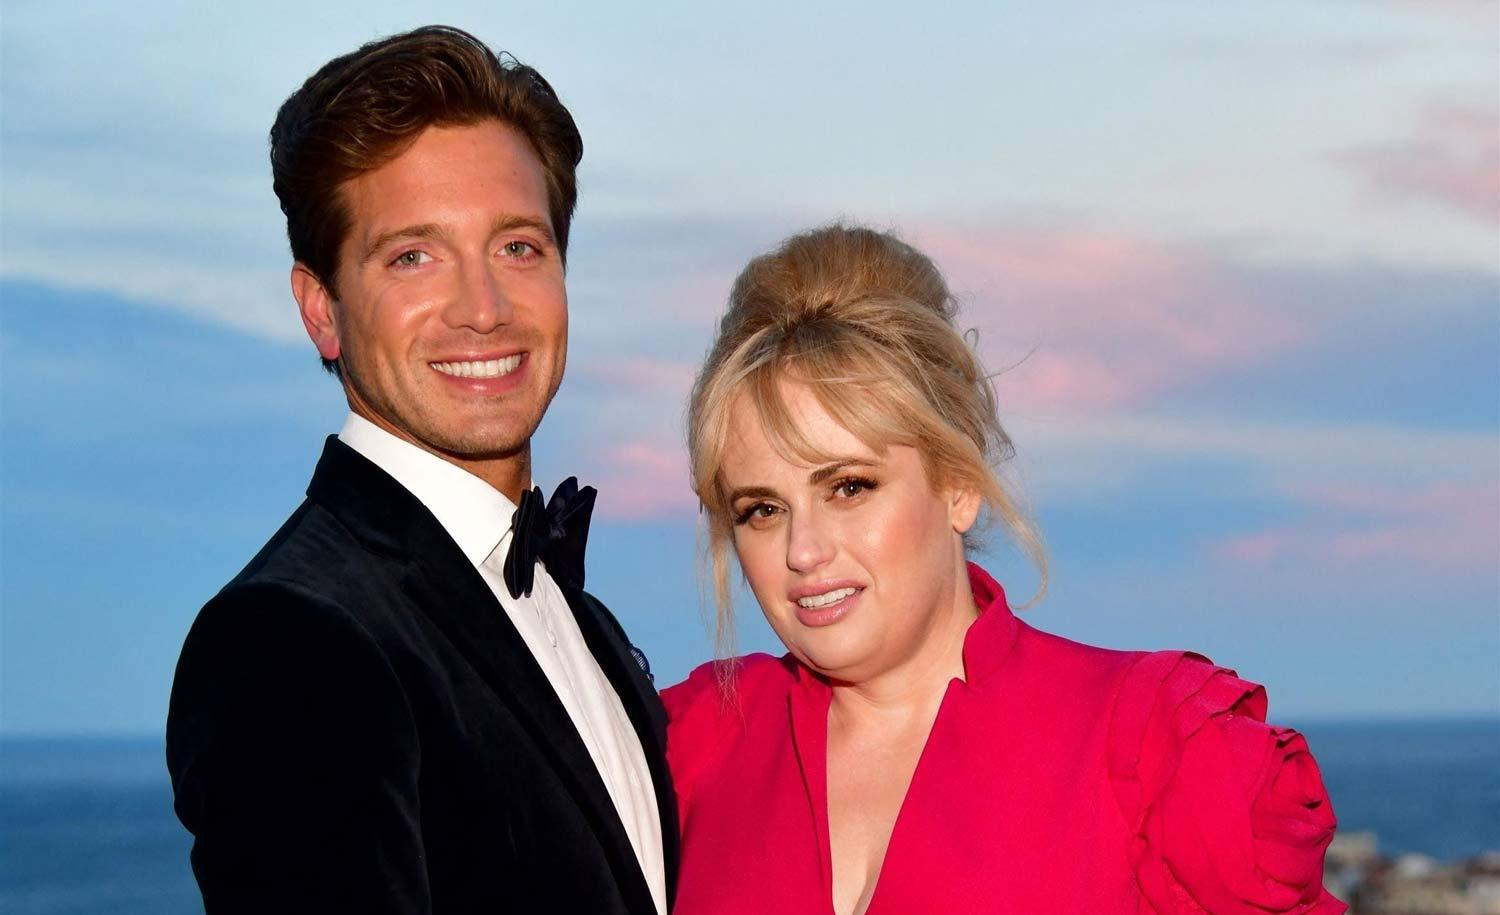 Rebel Wilson And Her BF Jacob Busch Pack The PDA In Cute Beach Video - Check Out Her Stunning Strapless Bathing Suit!